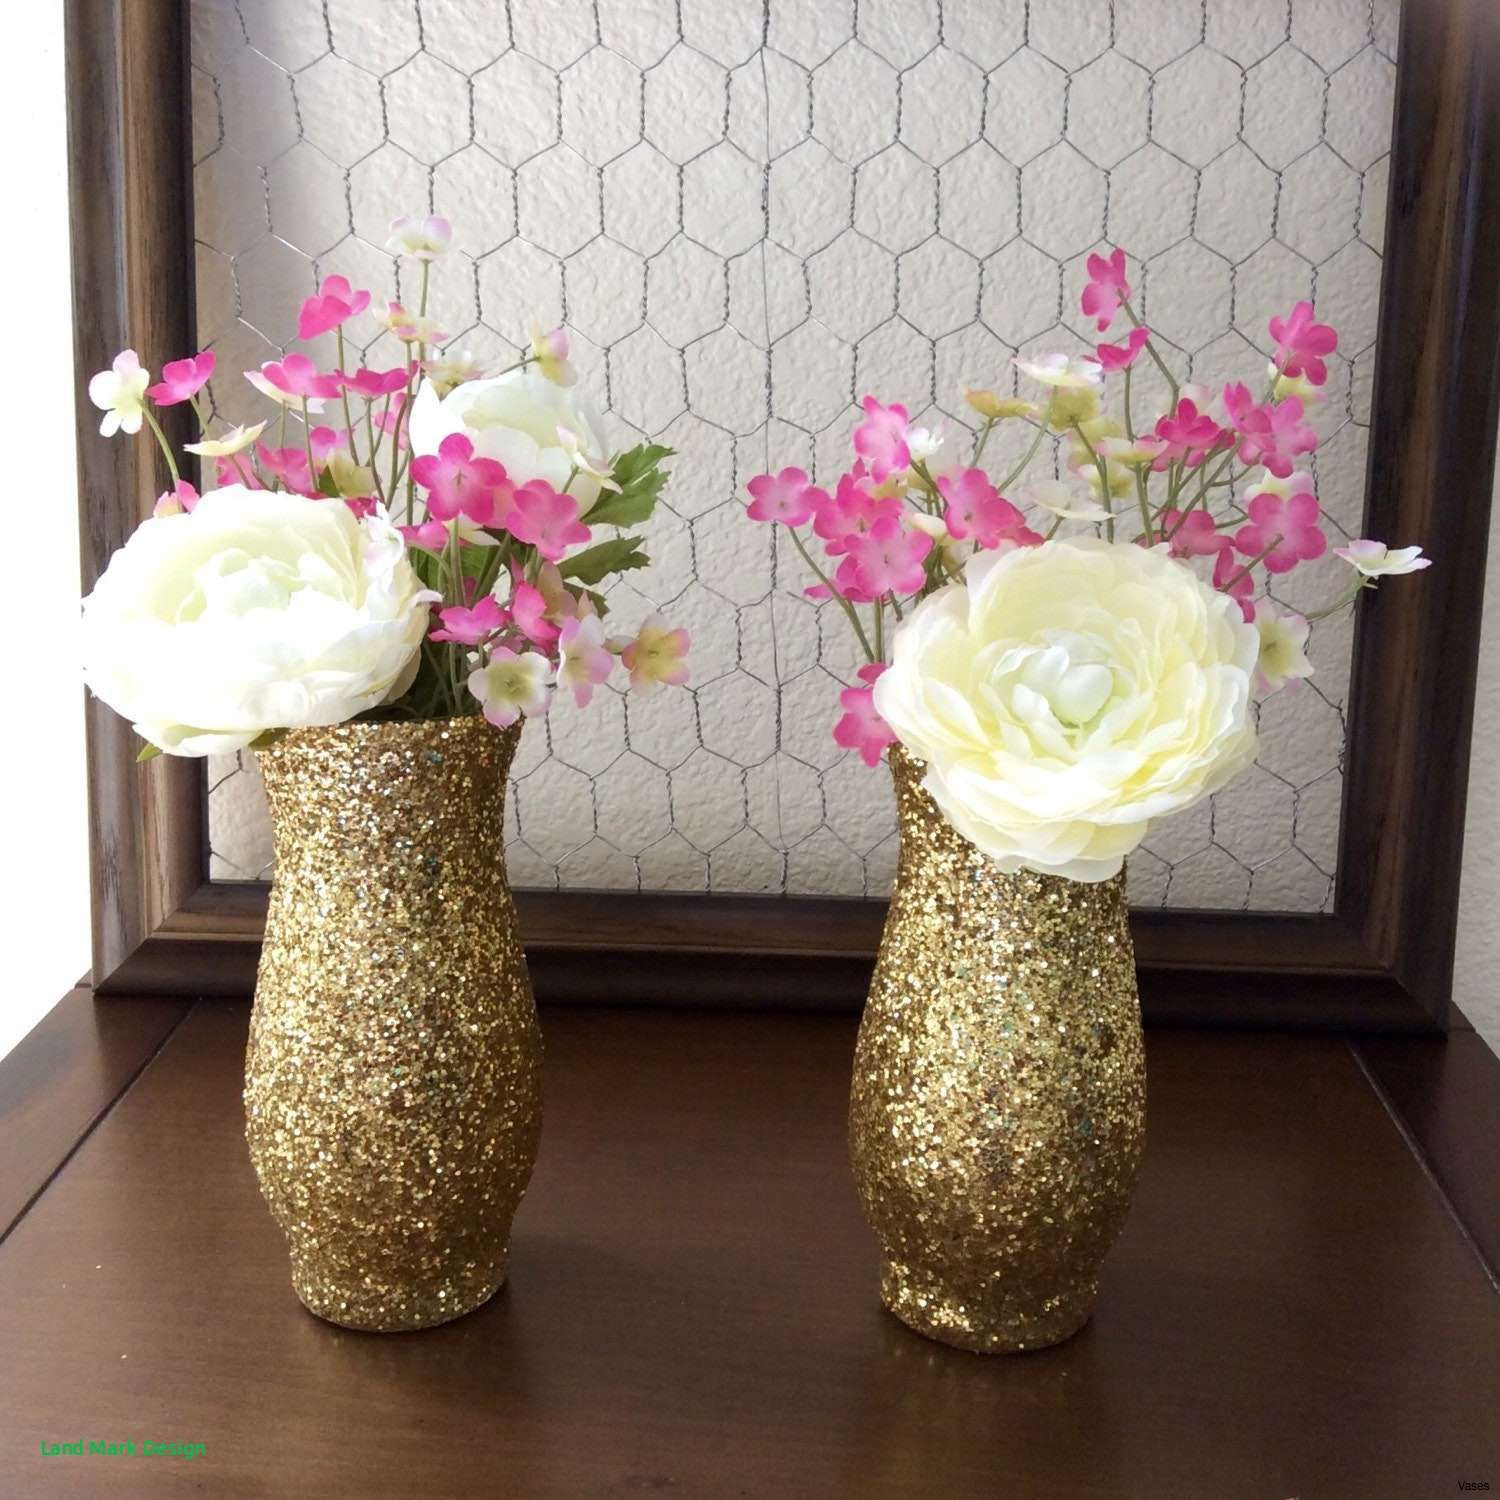 rose gold glitter vase of 19 gold flower vases the weekly world for il fullxfull 3b2bh vases gold glitter vase set of 10 wedding by i 8d via ydeevnepropecia com